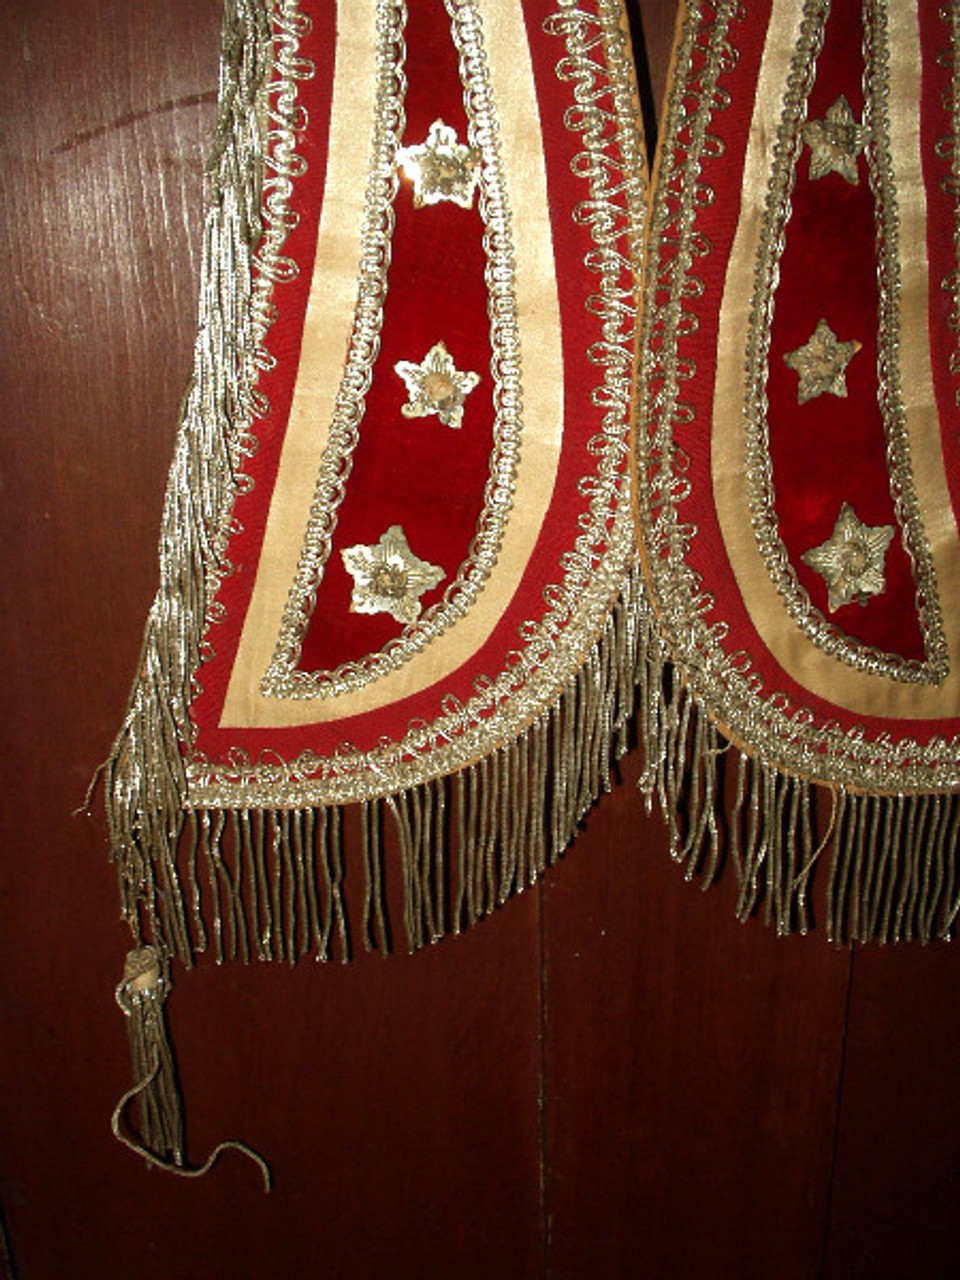 1880 1900 Victorian Fraternal Odd Fellow, Freemason, Templar Regalia Collar Banner Lot of 9